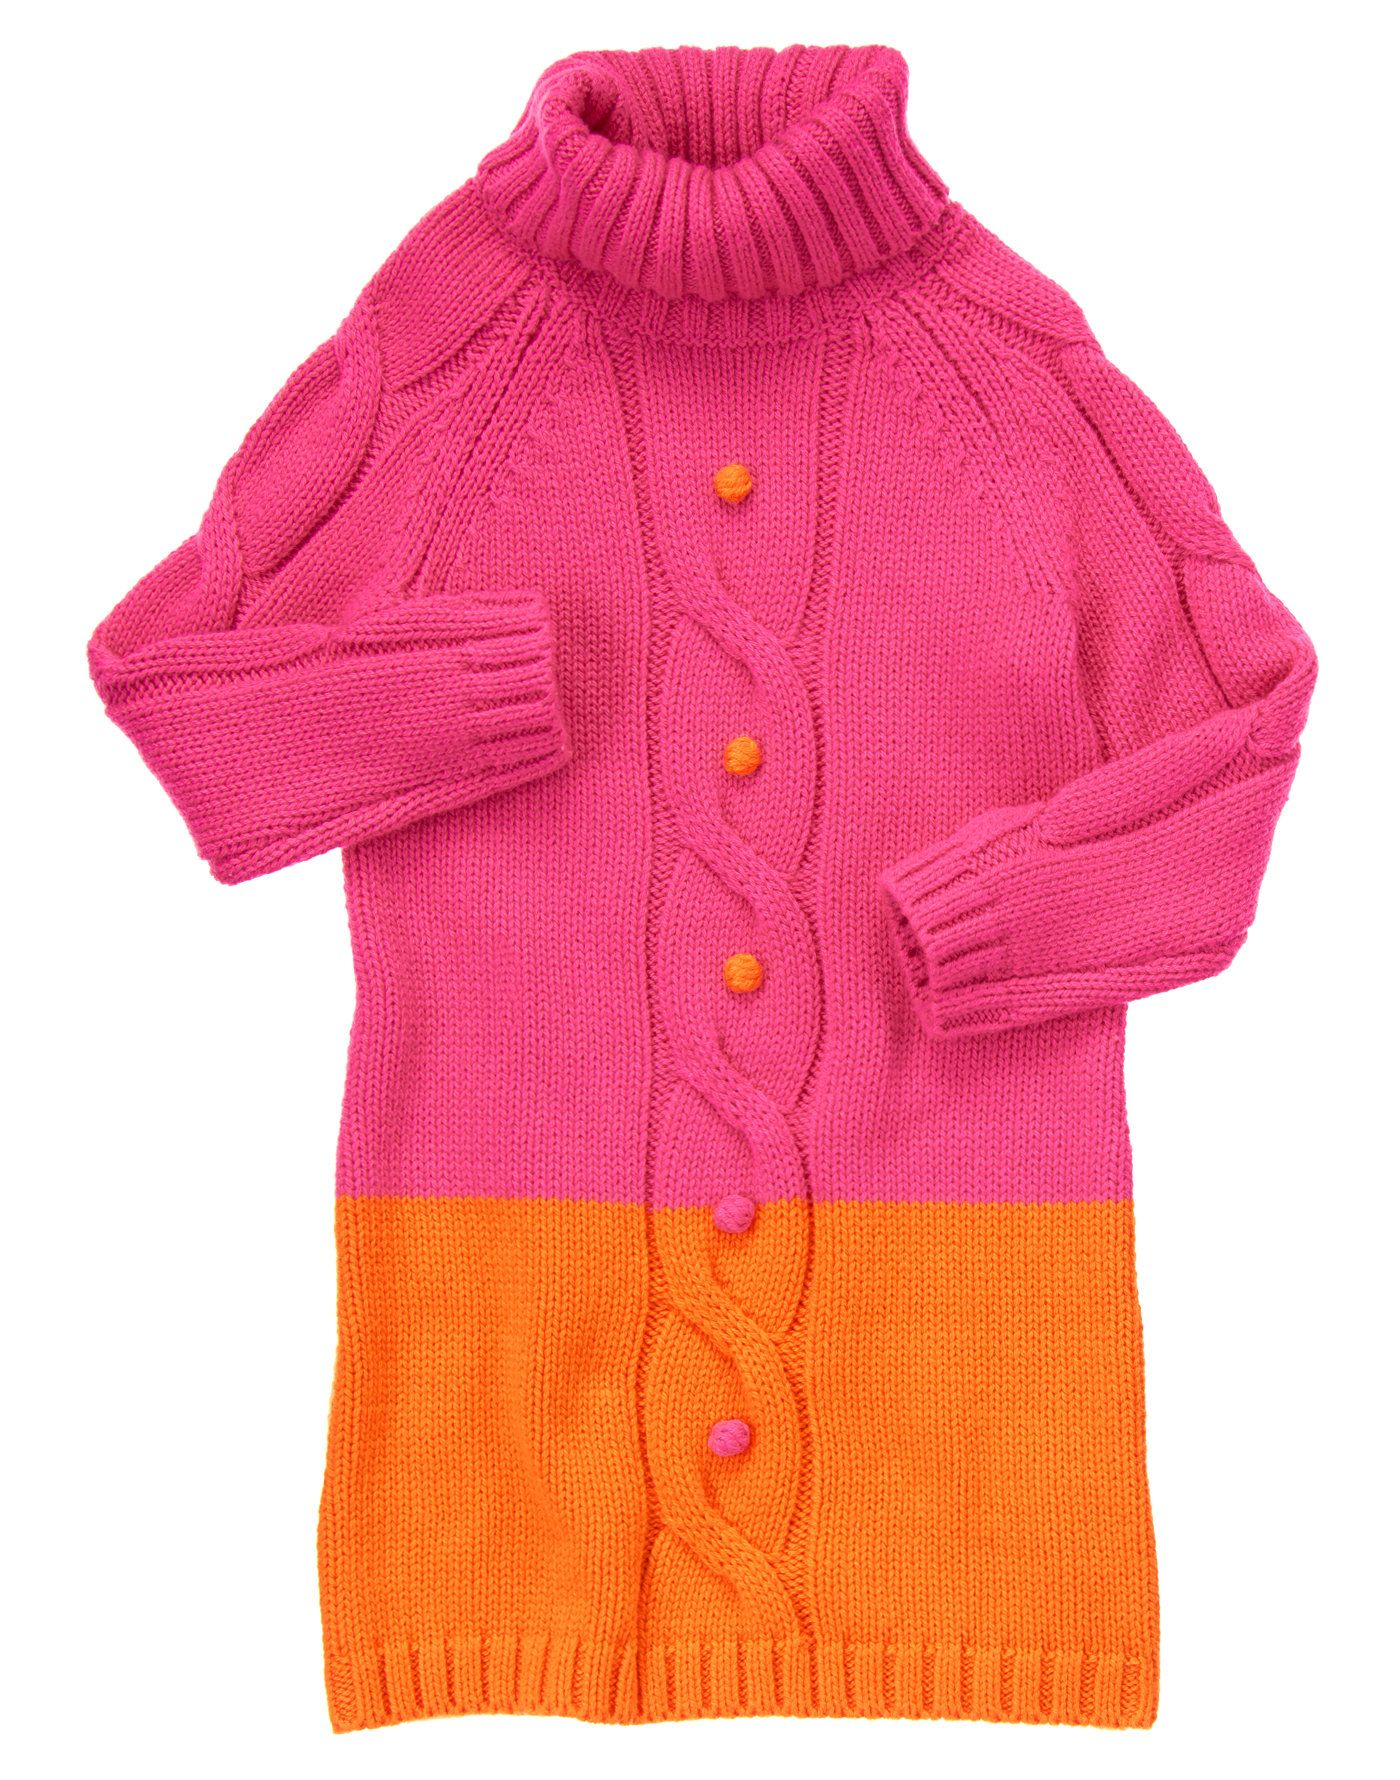 Gymboree- Happy shades of pink and orange with fun sweater bobbles ...